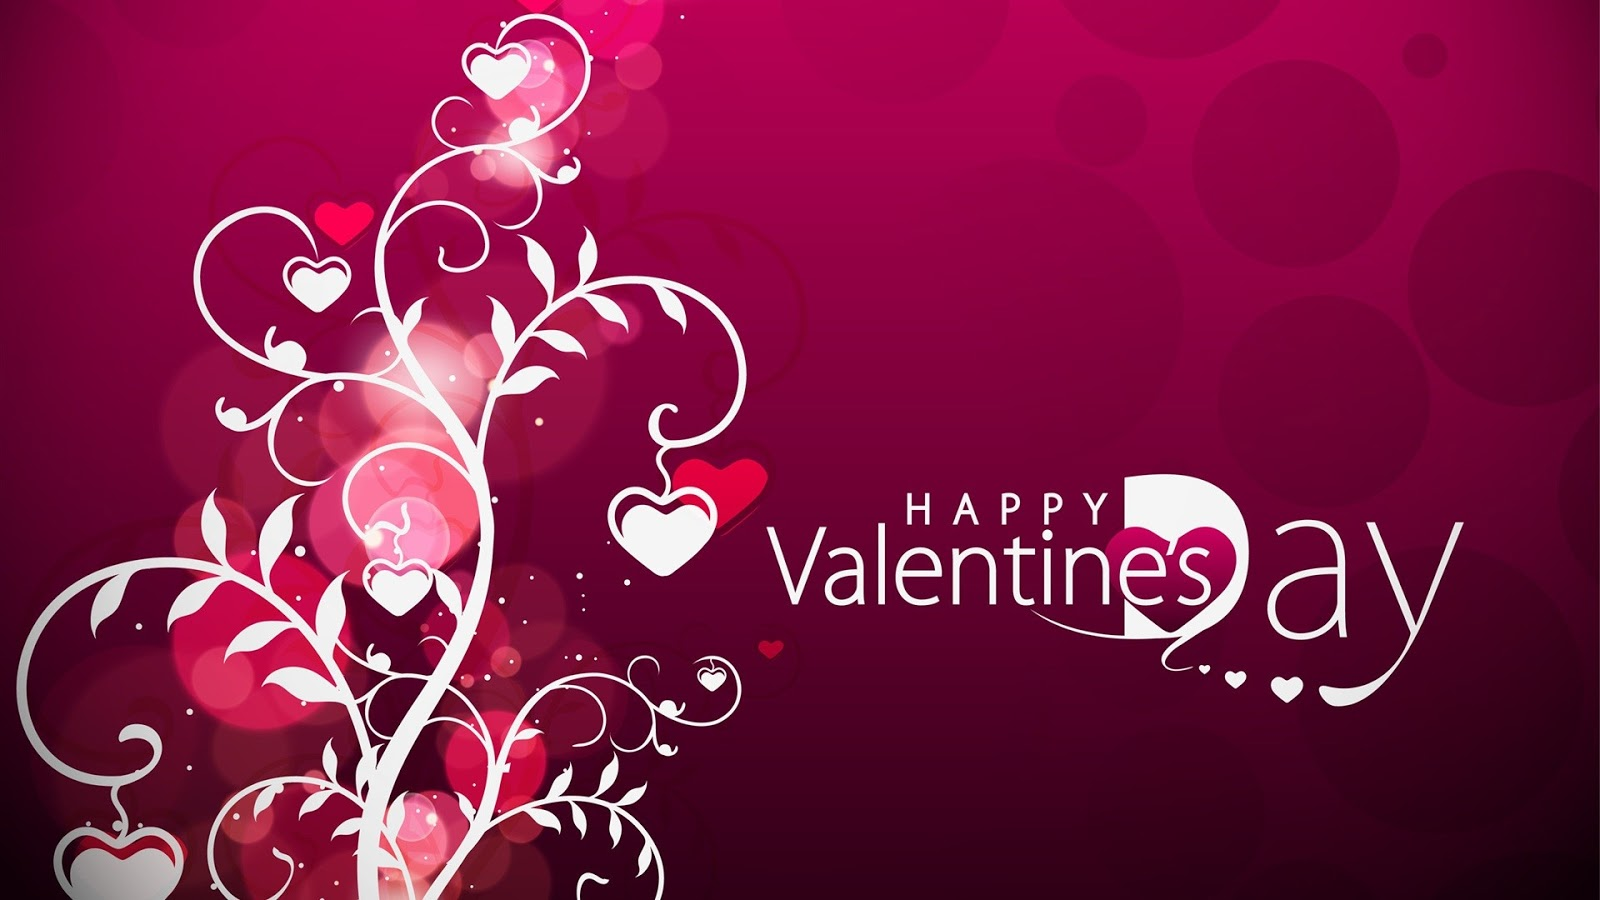 Happy valentines day greetings 2018 funny greetings quotes here some of valentines day greetings card 2018 free download available which can be used to celebrate the happy valentines day 2018 kristyandbryce Image collections